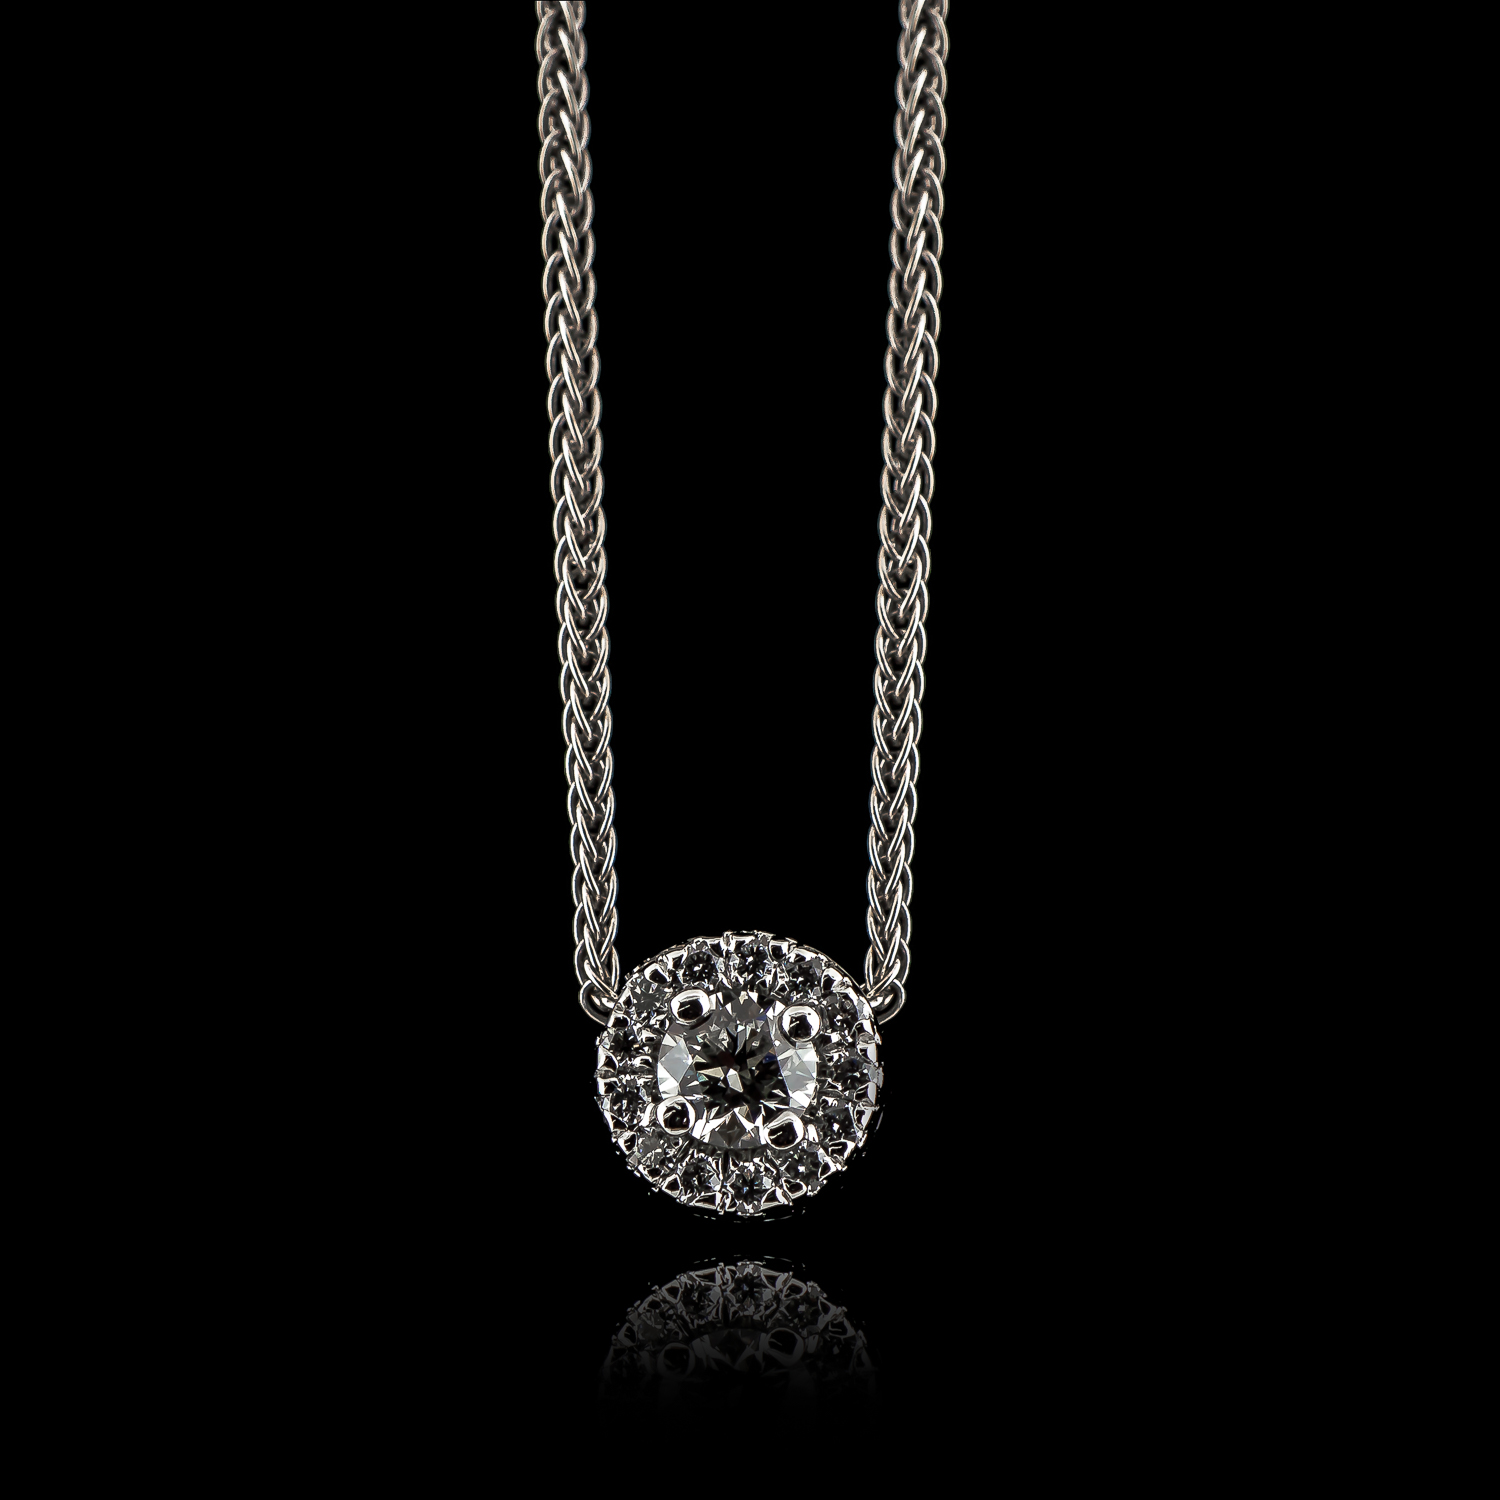 cabral pendant with engraving (1 of 1)-3.jpg